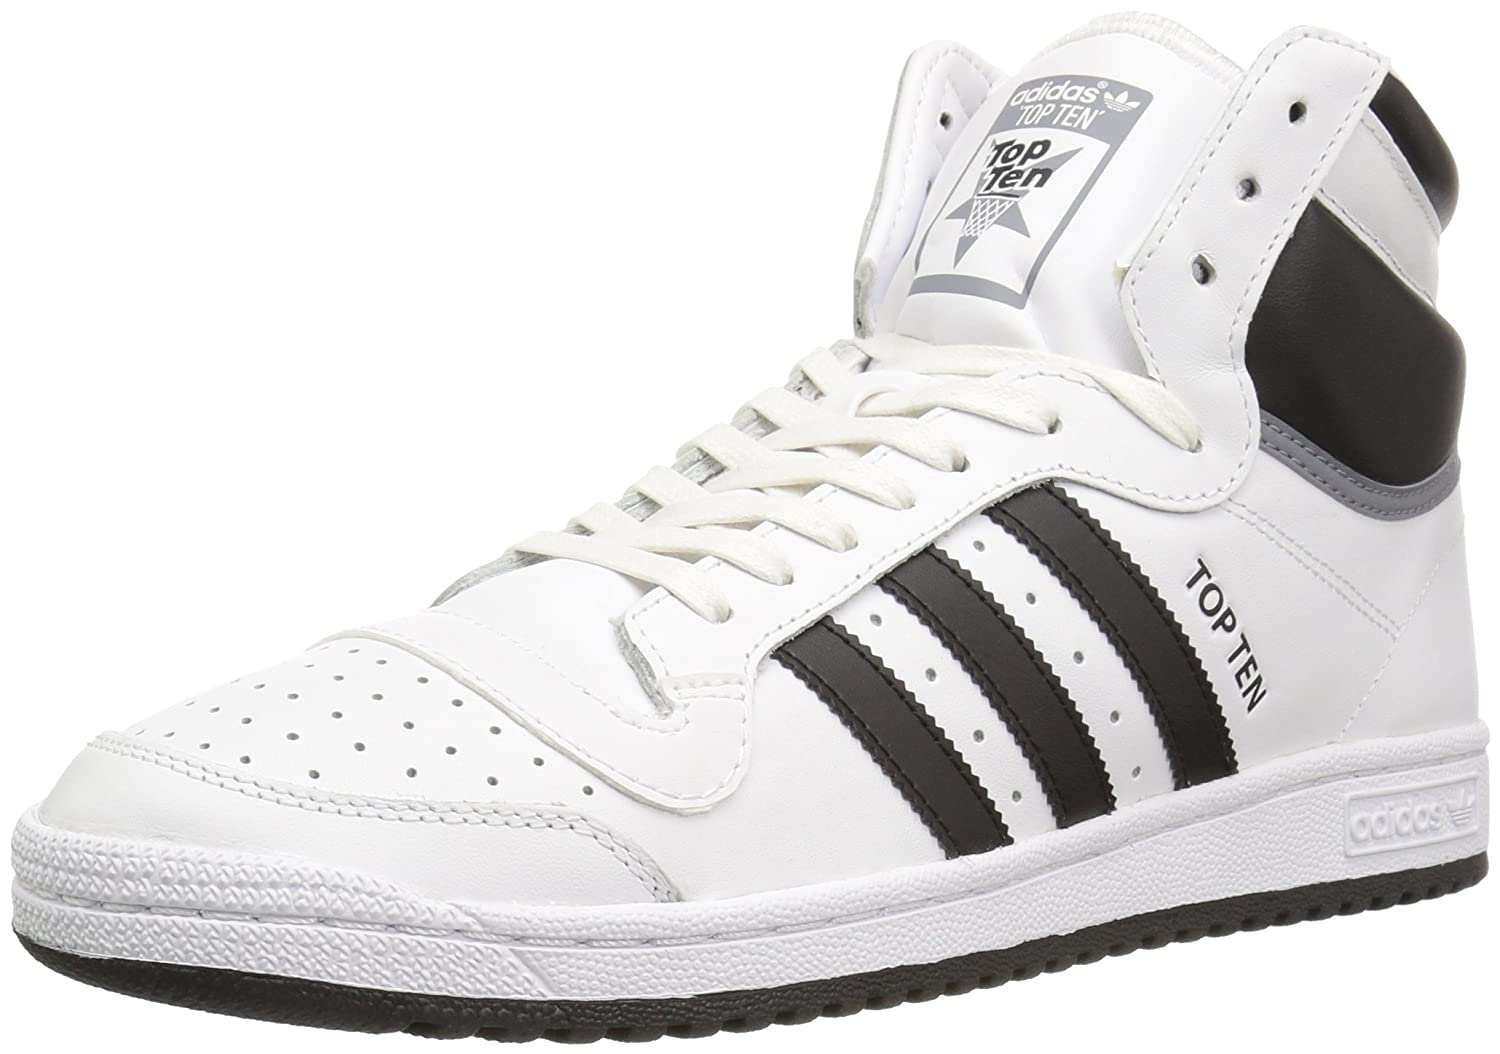 the best attitude c8ede 04696 Amazon.com   adidas Originals Men s Top Ten HI Fashion Running Shoe, White  Black Tech Grey Fabric, ((12 M US)   Basketball